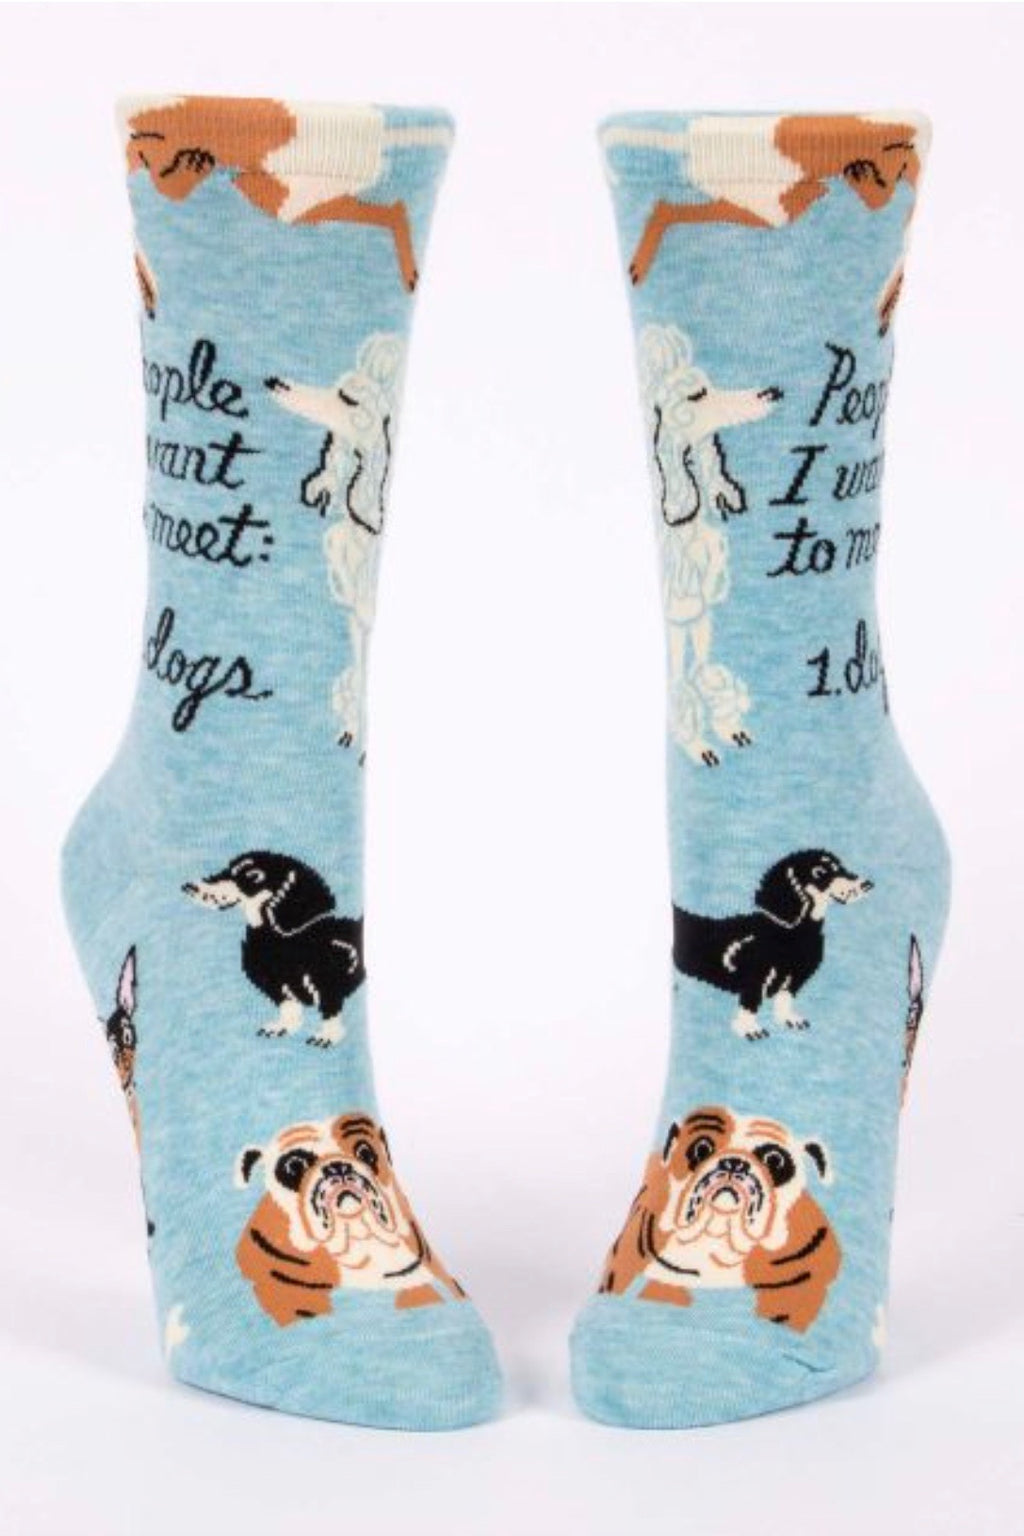 blueq-SW511-womens-crew-socks-people-i-want-to-meet-dogs-blue